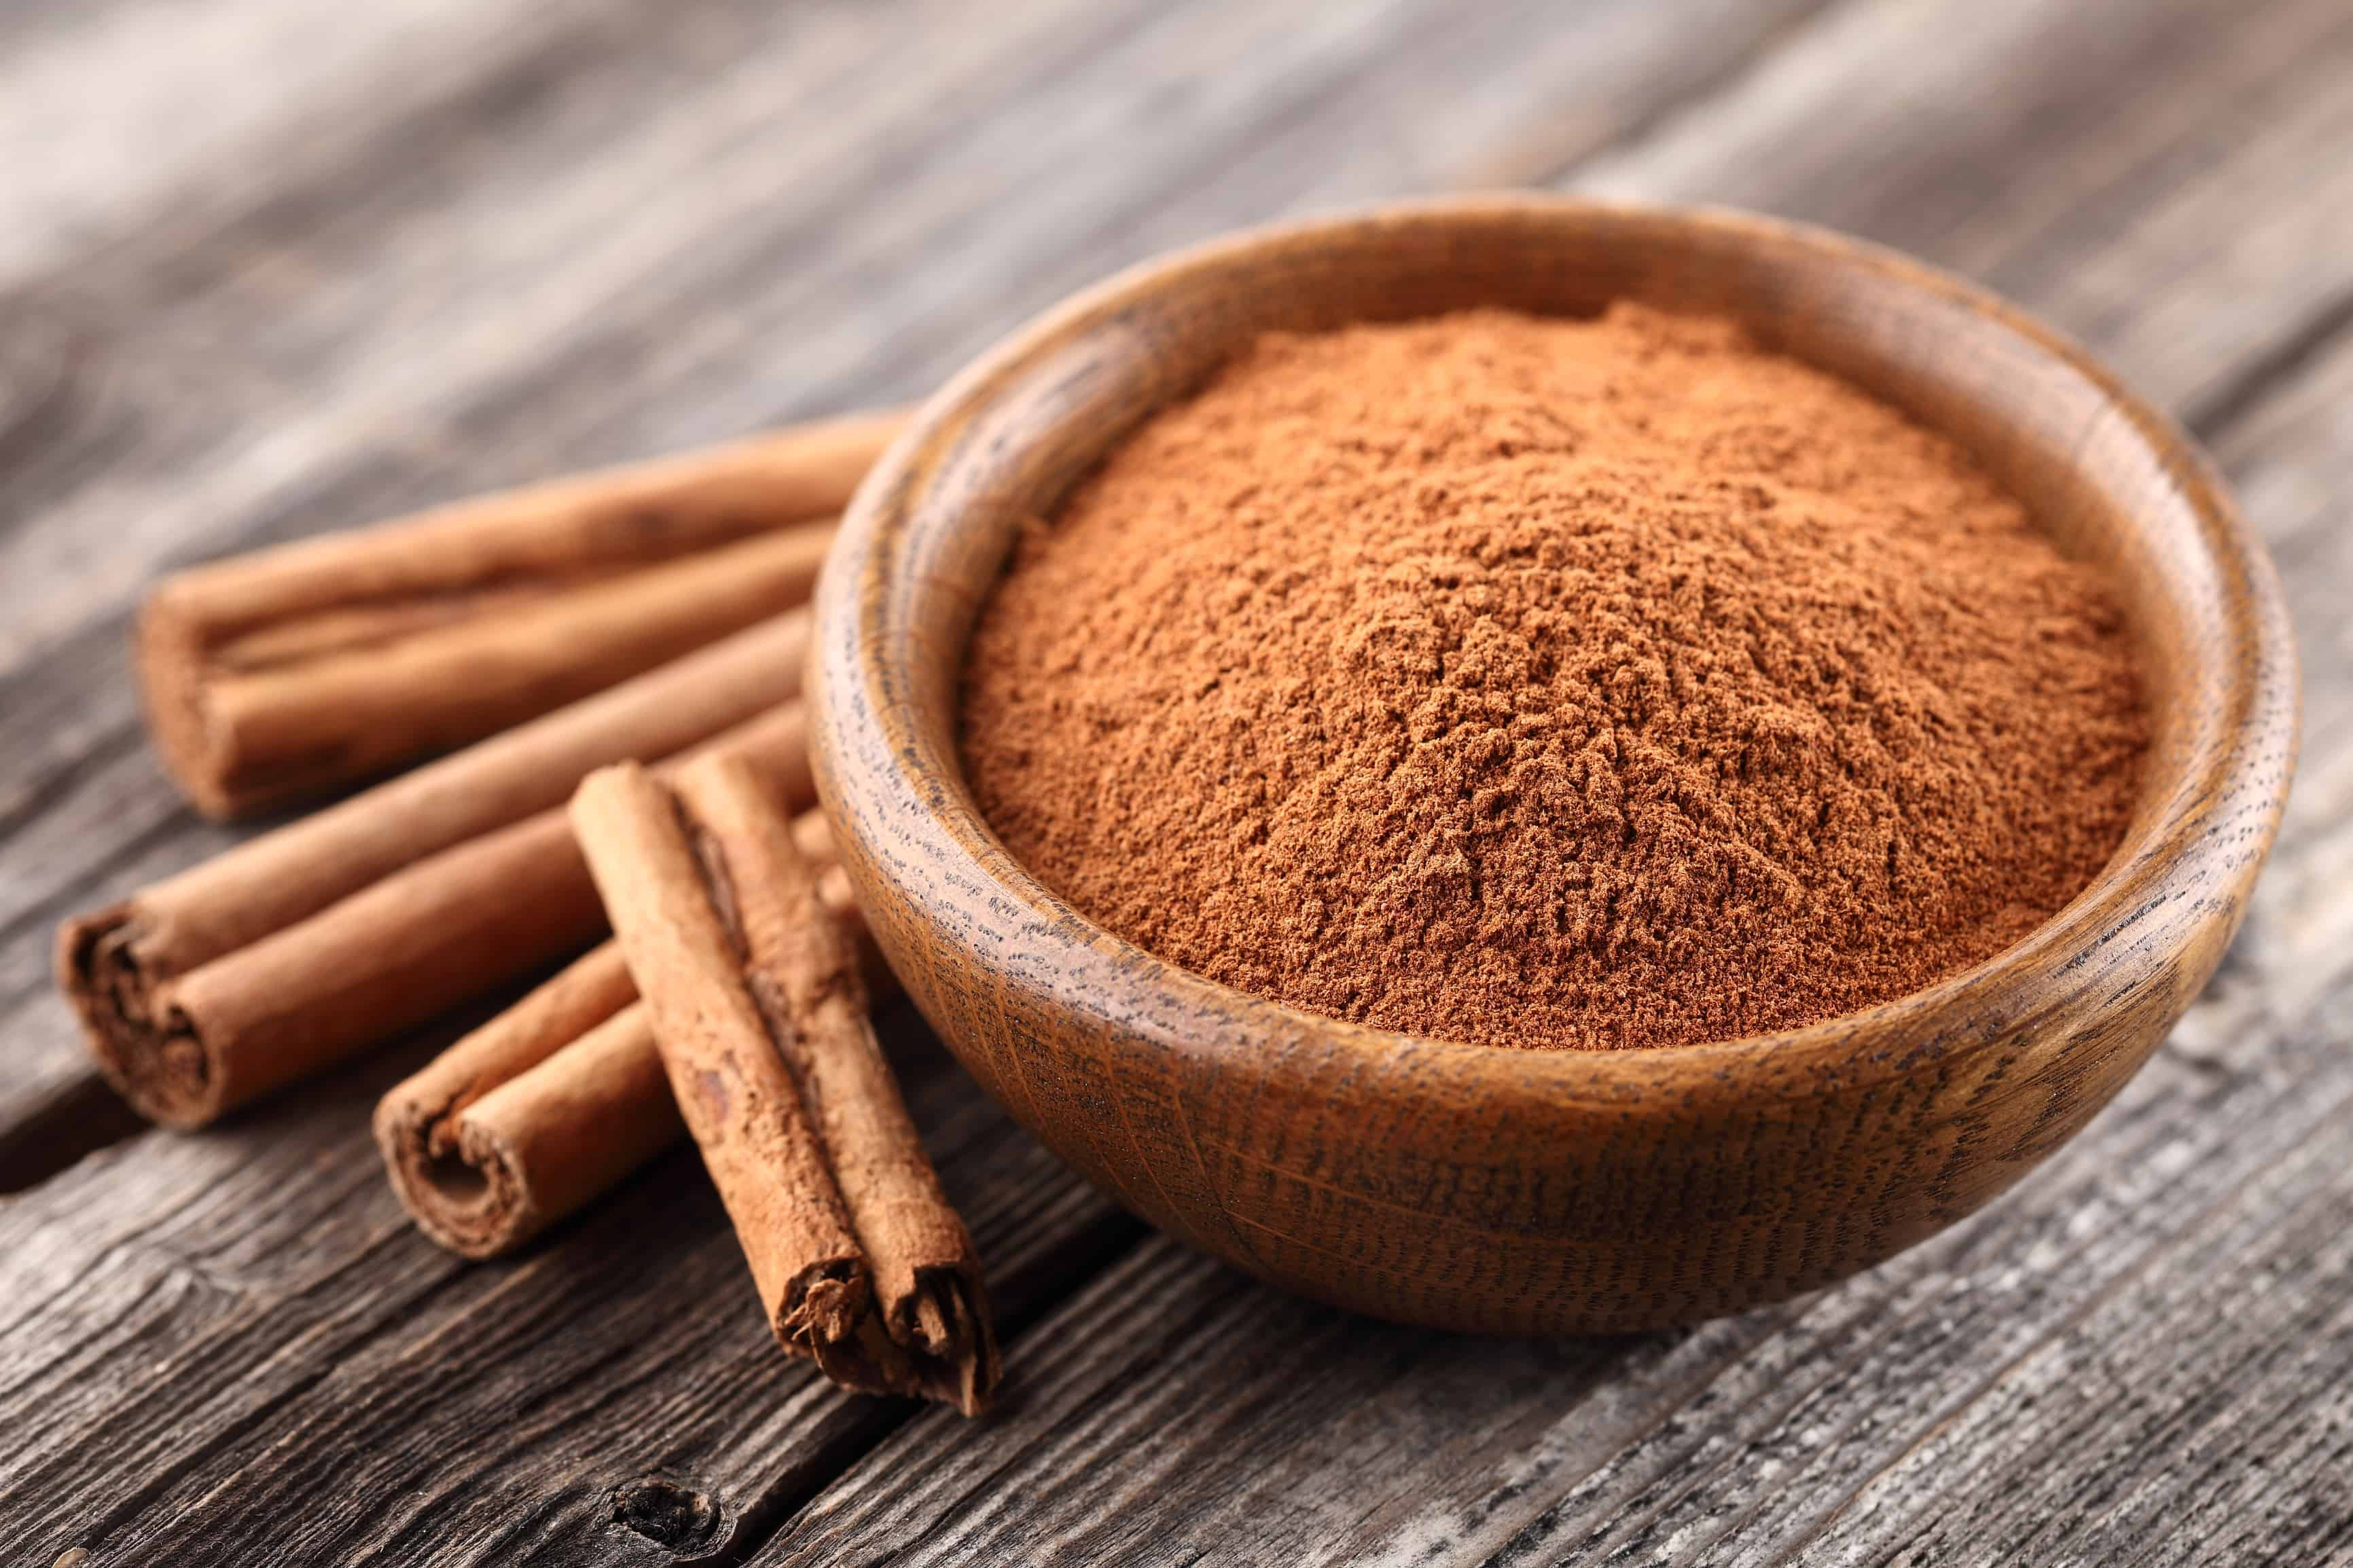 Cinnamon is one of the most commonly used spices, but there are so many varieties. See if you are using the one with best flavor and maximum health benefits!#cinnamon www.savoryexperiments.com